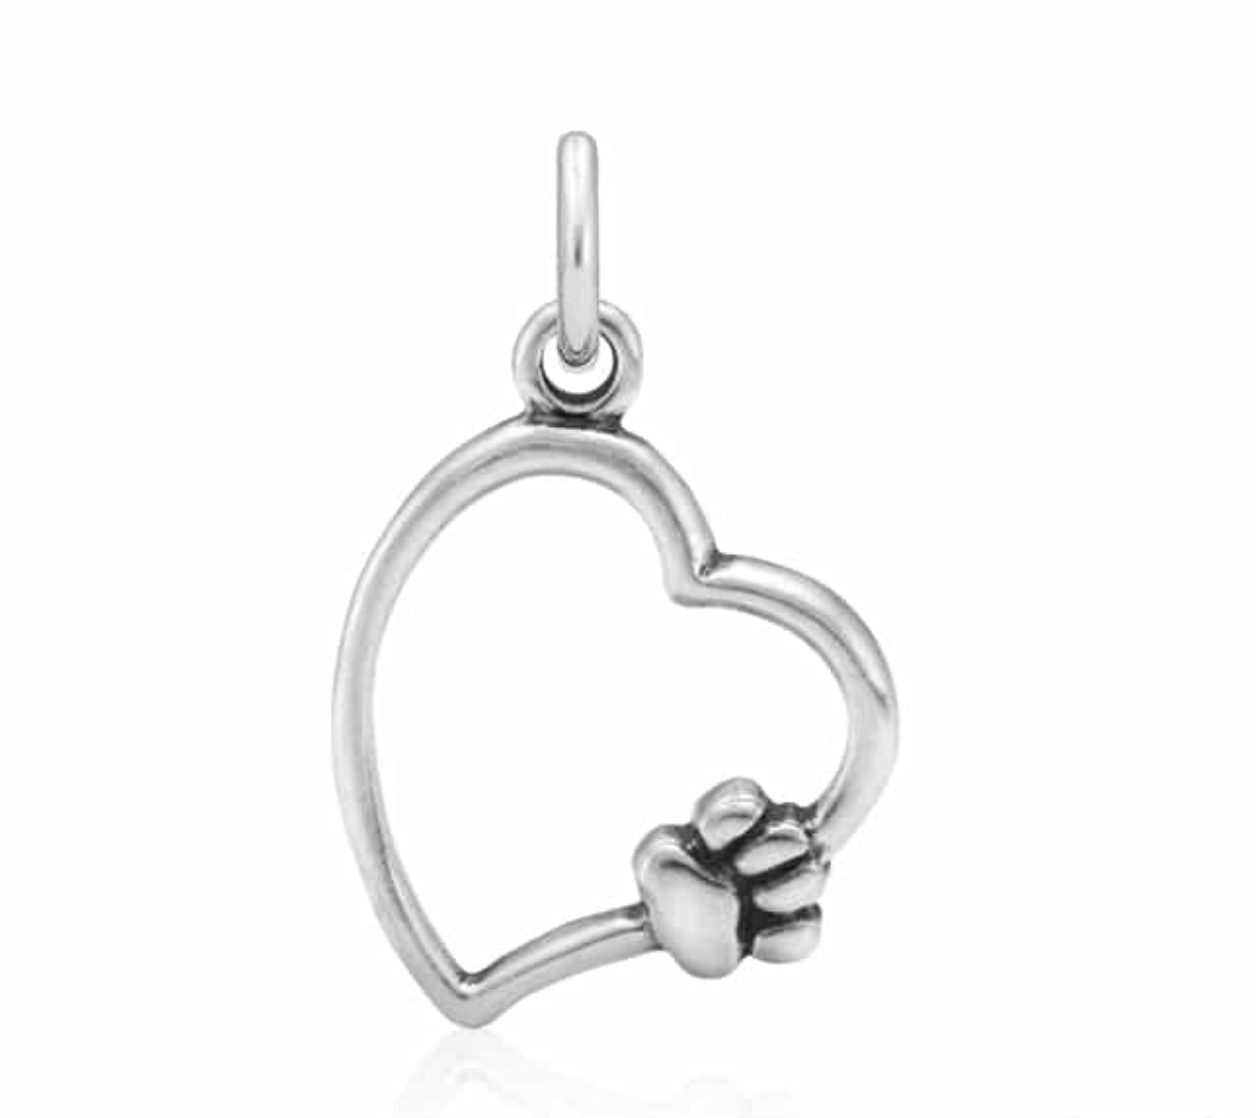 Paws On My Heart Pendant Sterling Silver